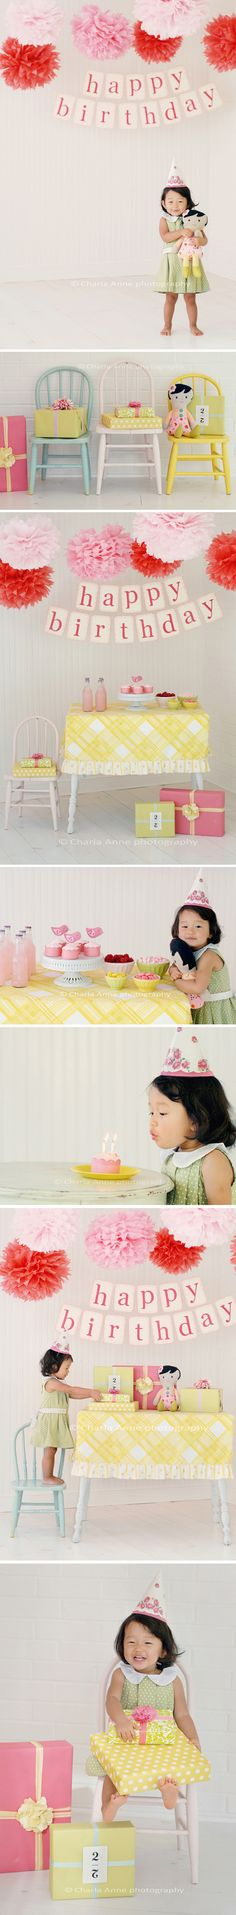 Birthday Party - this summer we will be celebrating our baby girls birthday party in style, with a wish list at Chapter.indigo #indigo #perfectsummer